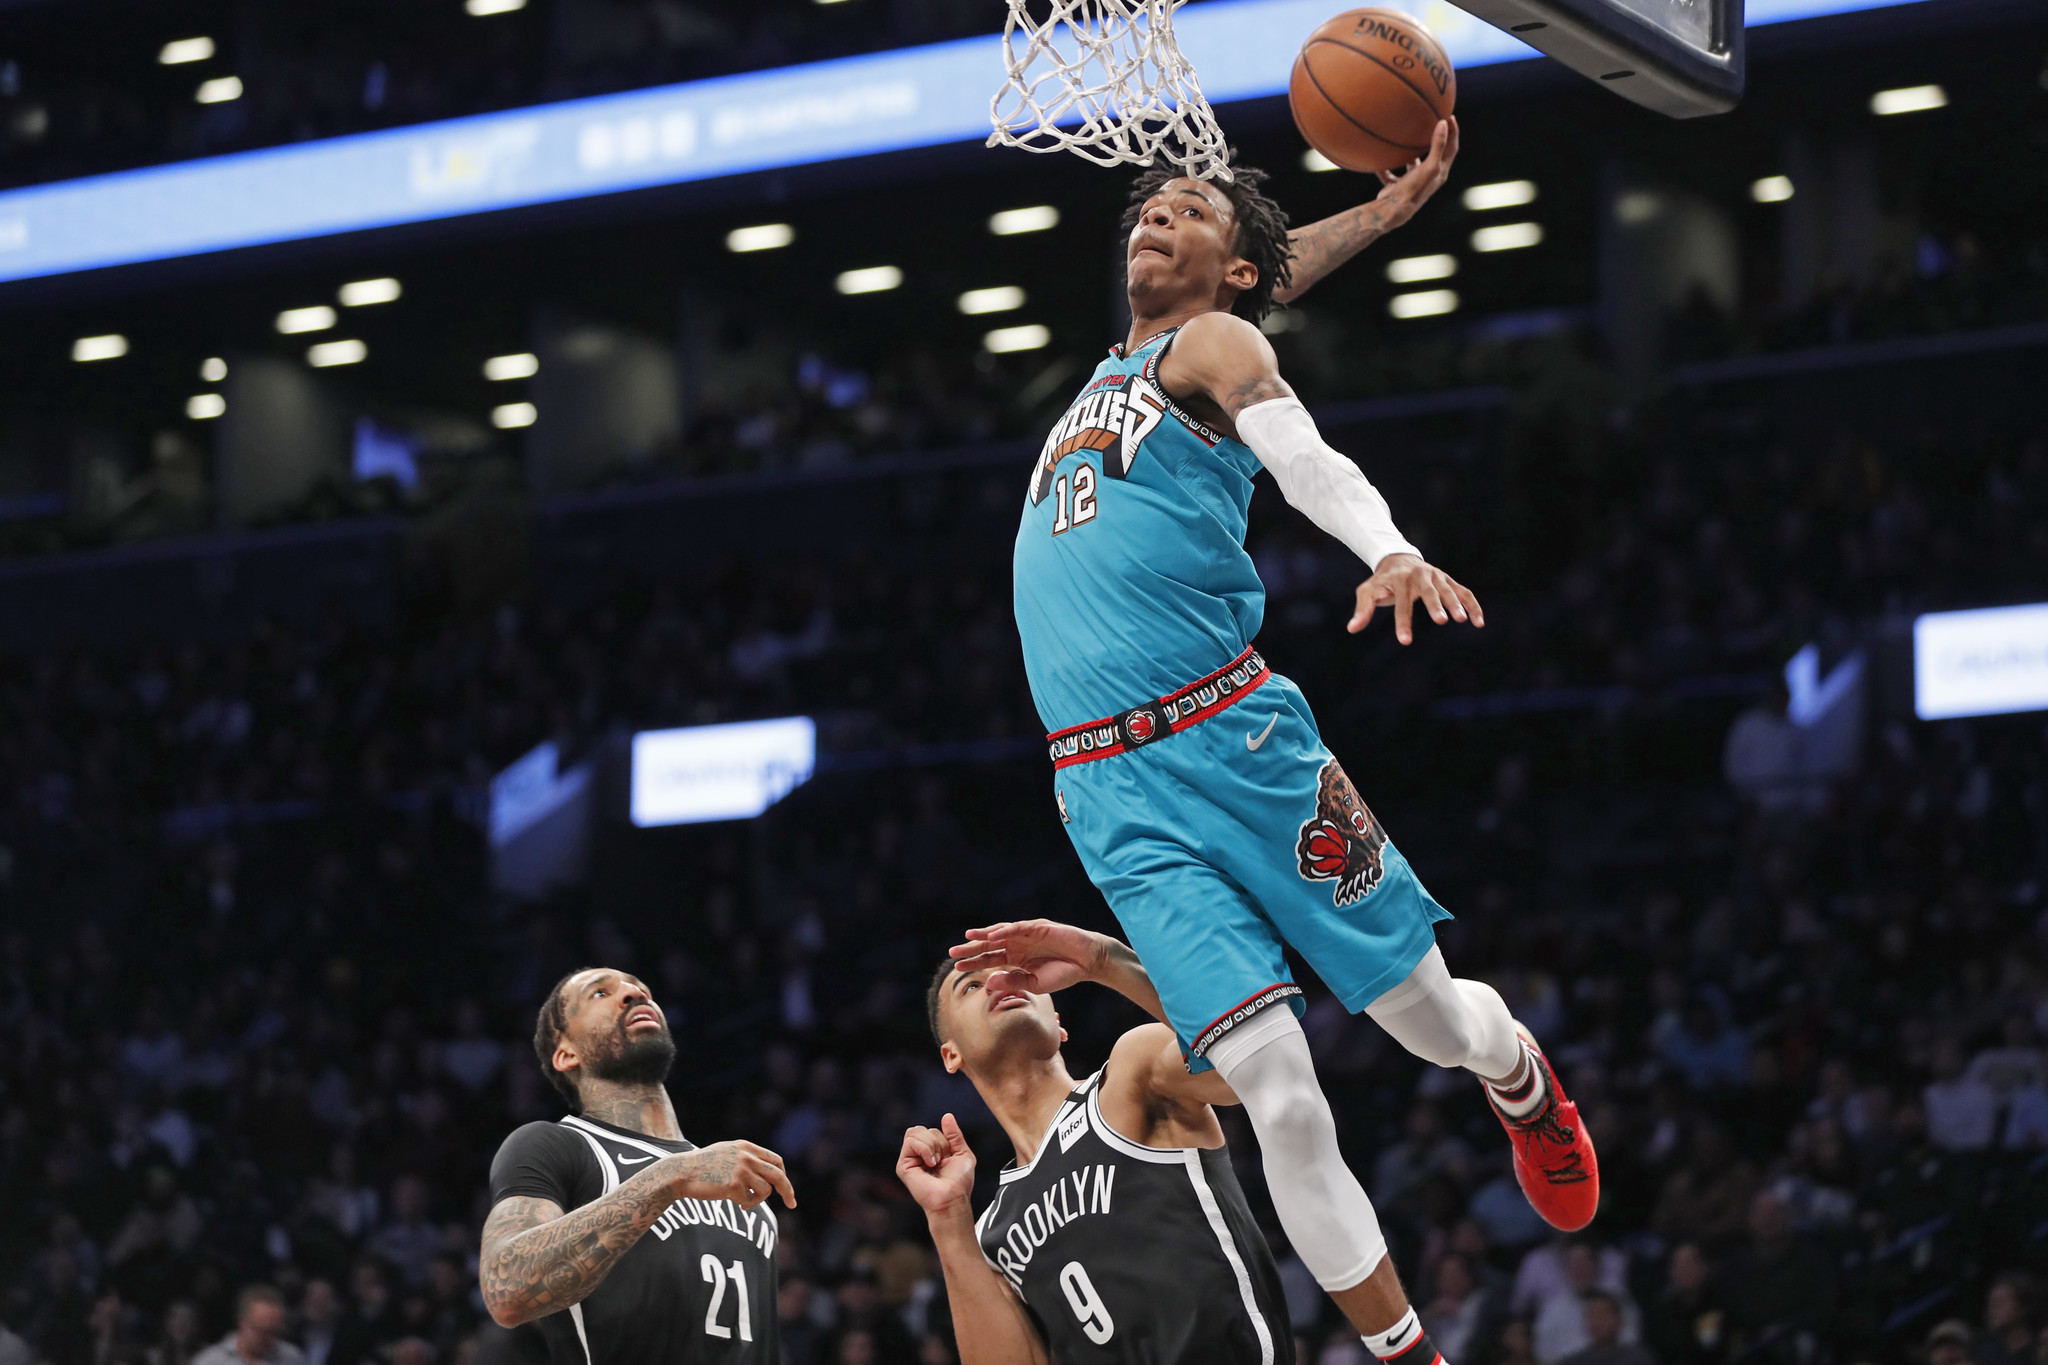 Nets booed out of Barclays Arena after mauling by Grizzlies